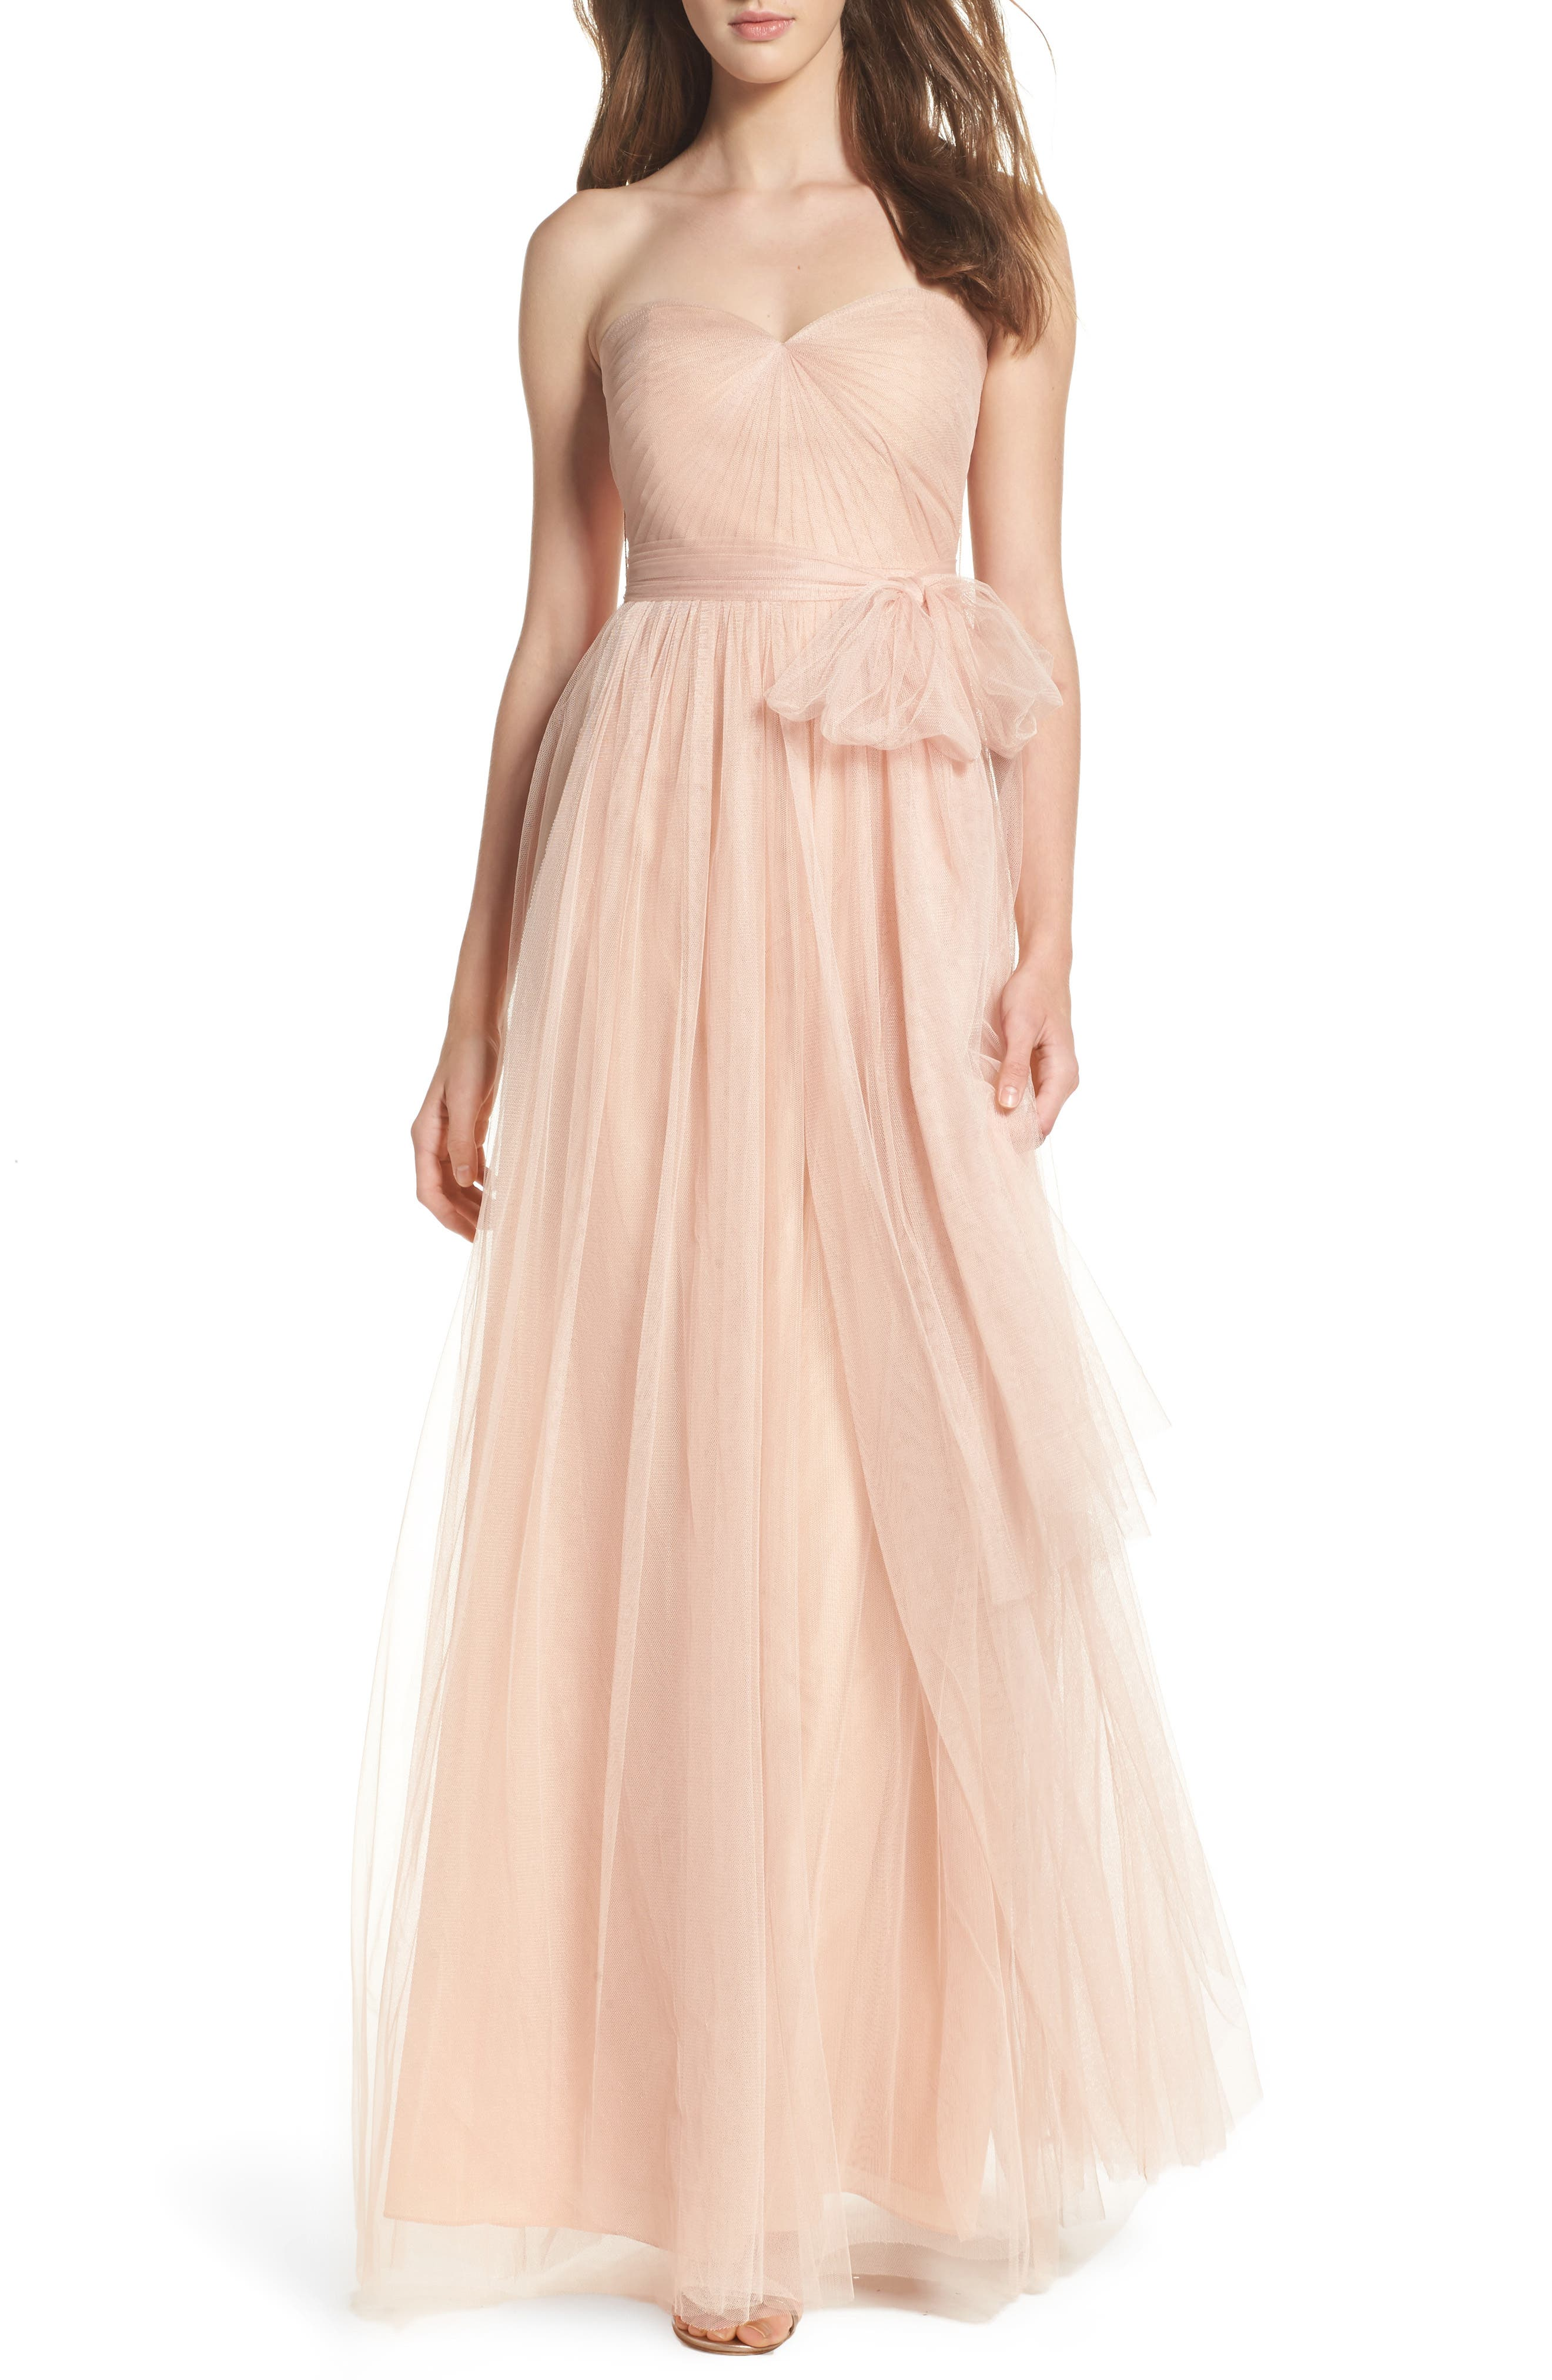 Annabelle Convertible Tulle Column Dress,                             Main thumbnail 1, color,                             CAMEO PINK